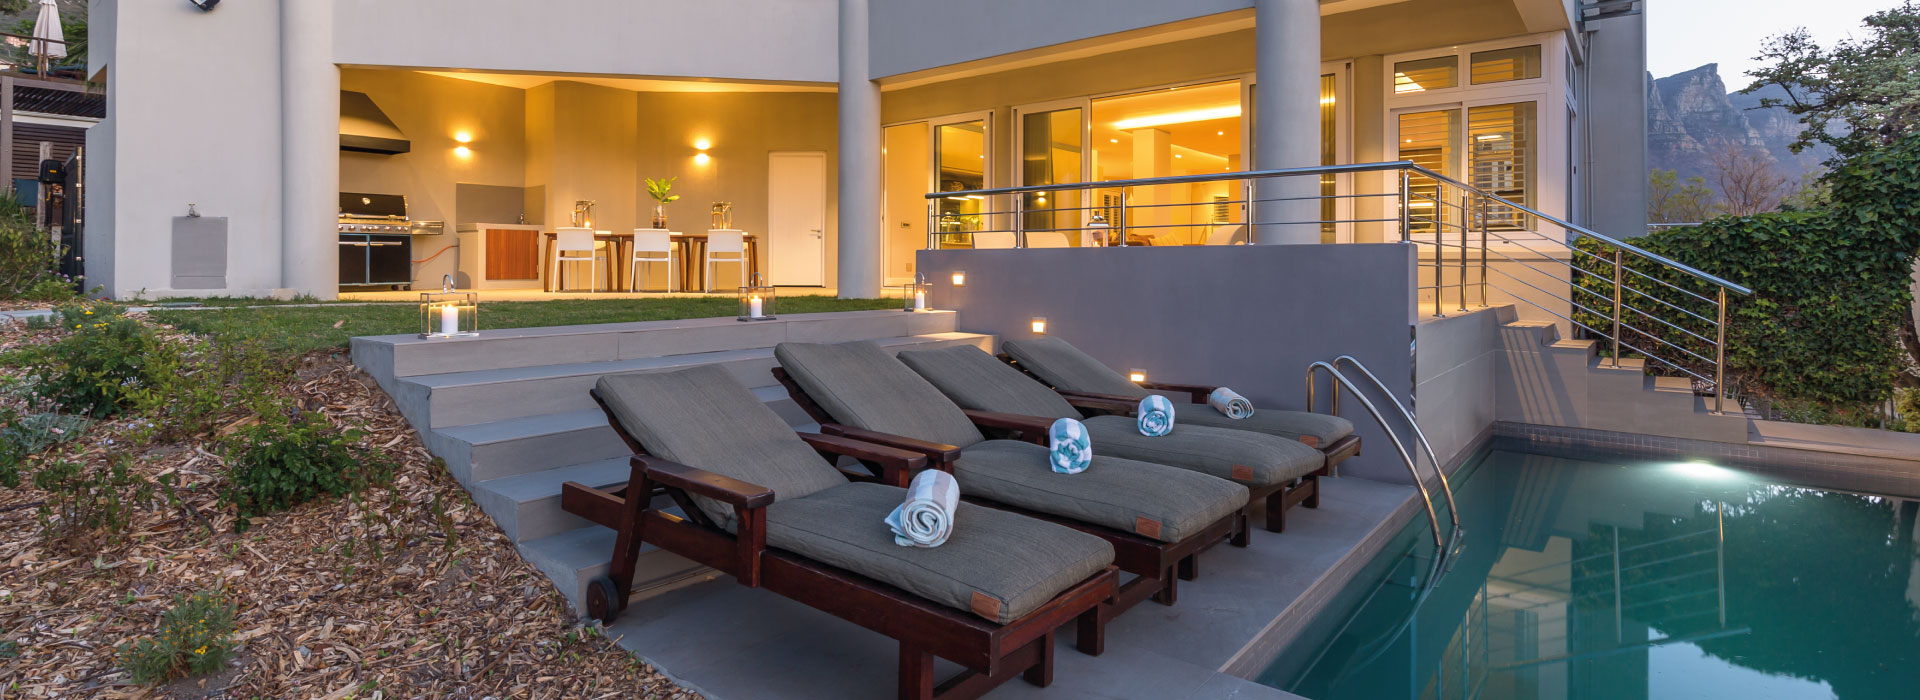 Camps Bay Retreat - Pool Lounger